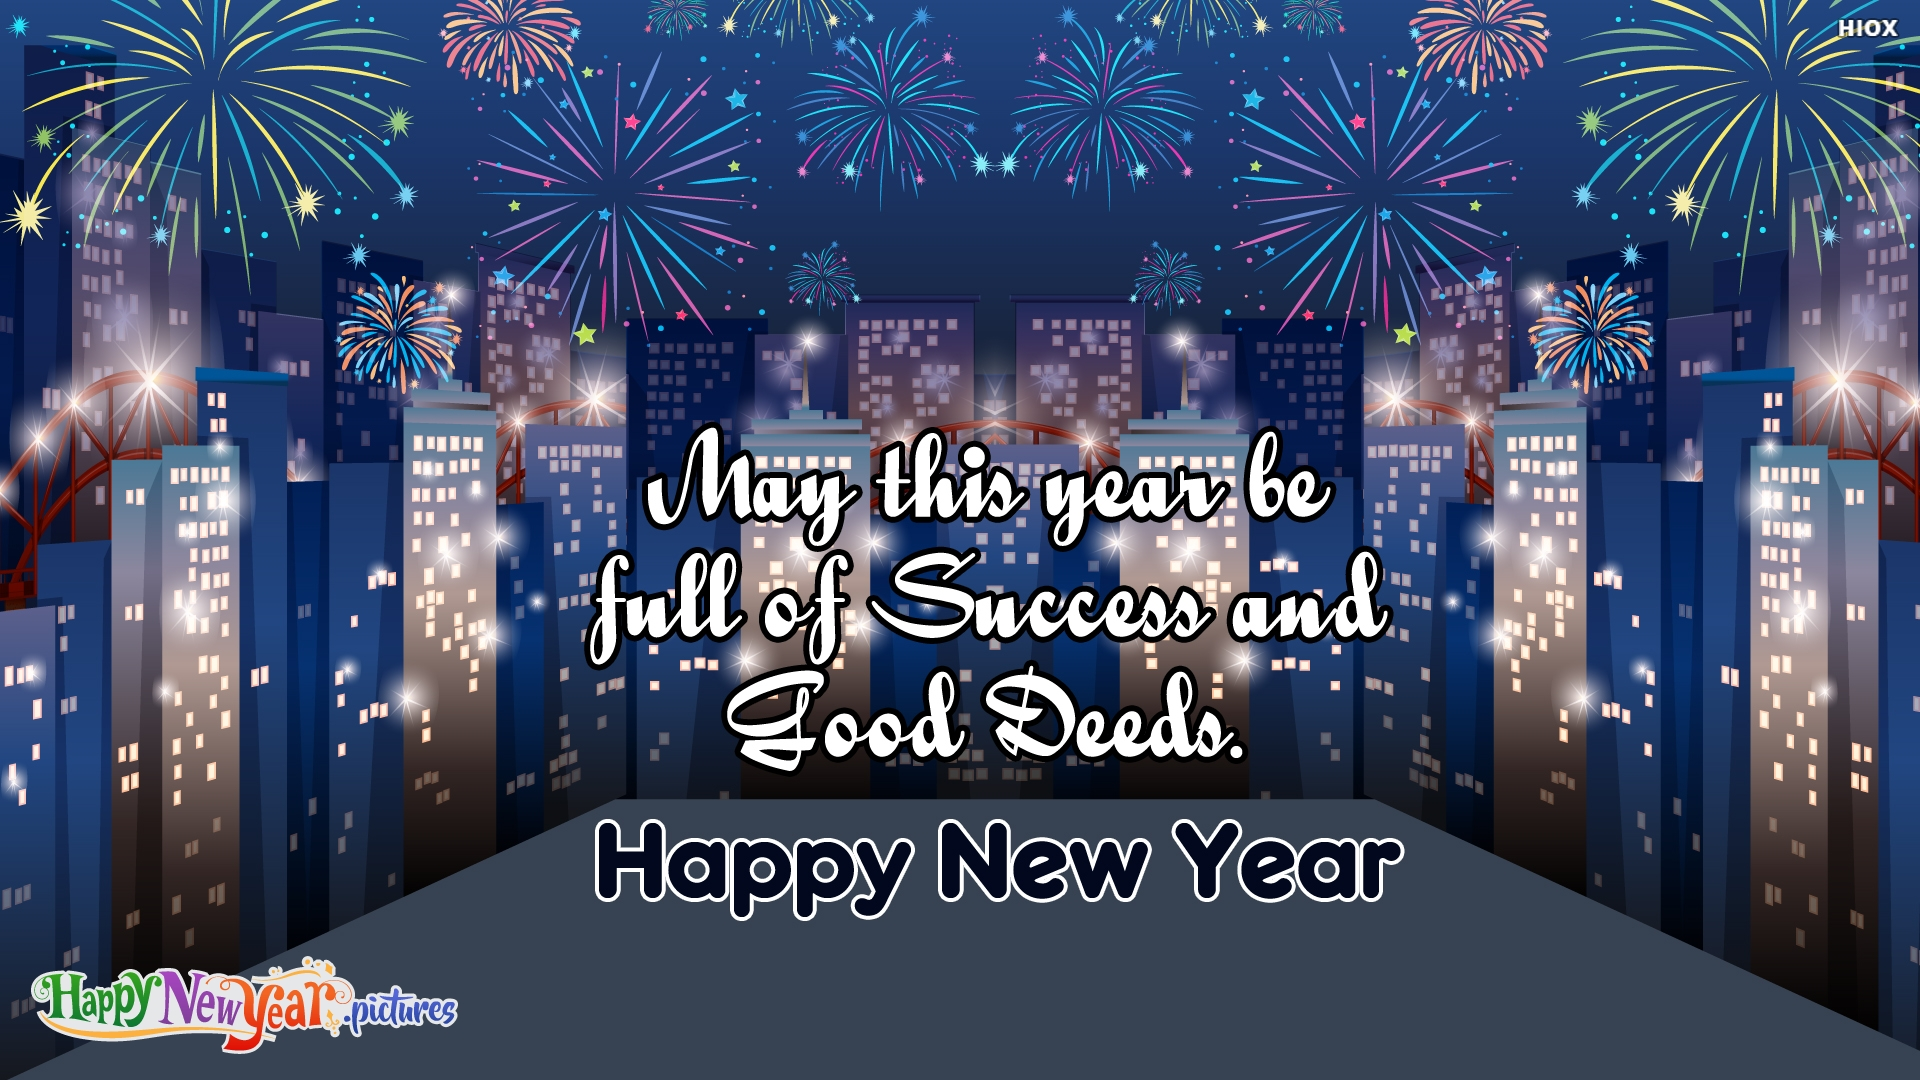 Bright Happy New Year Wishes To All